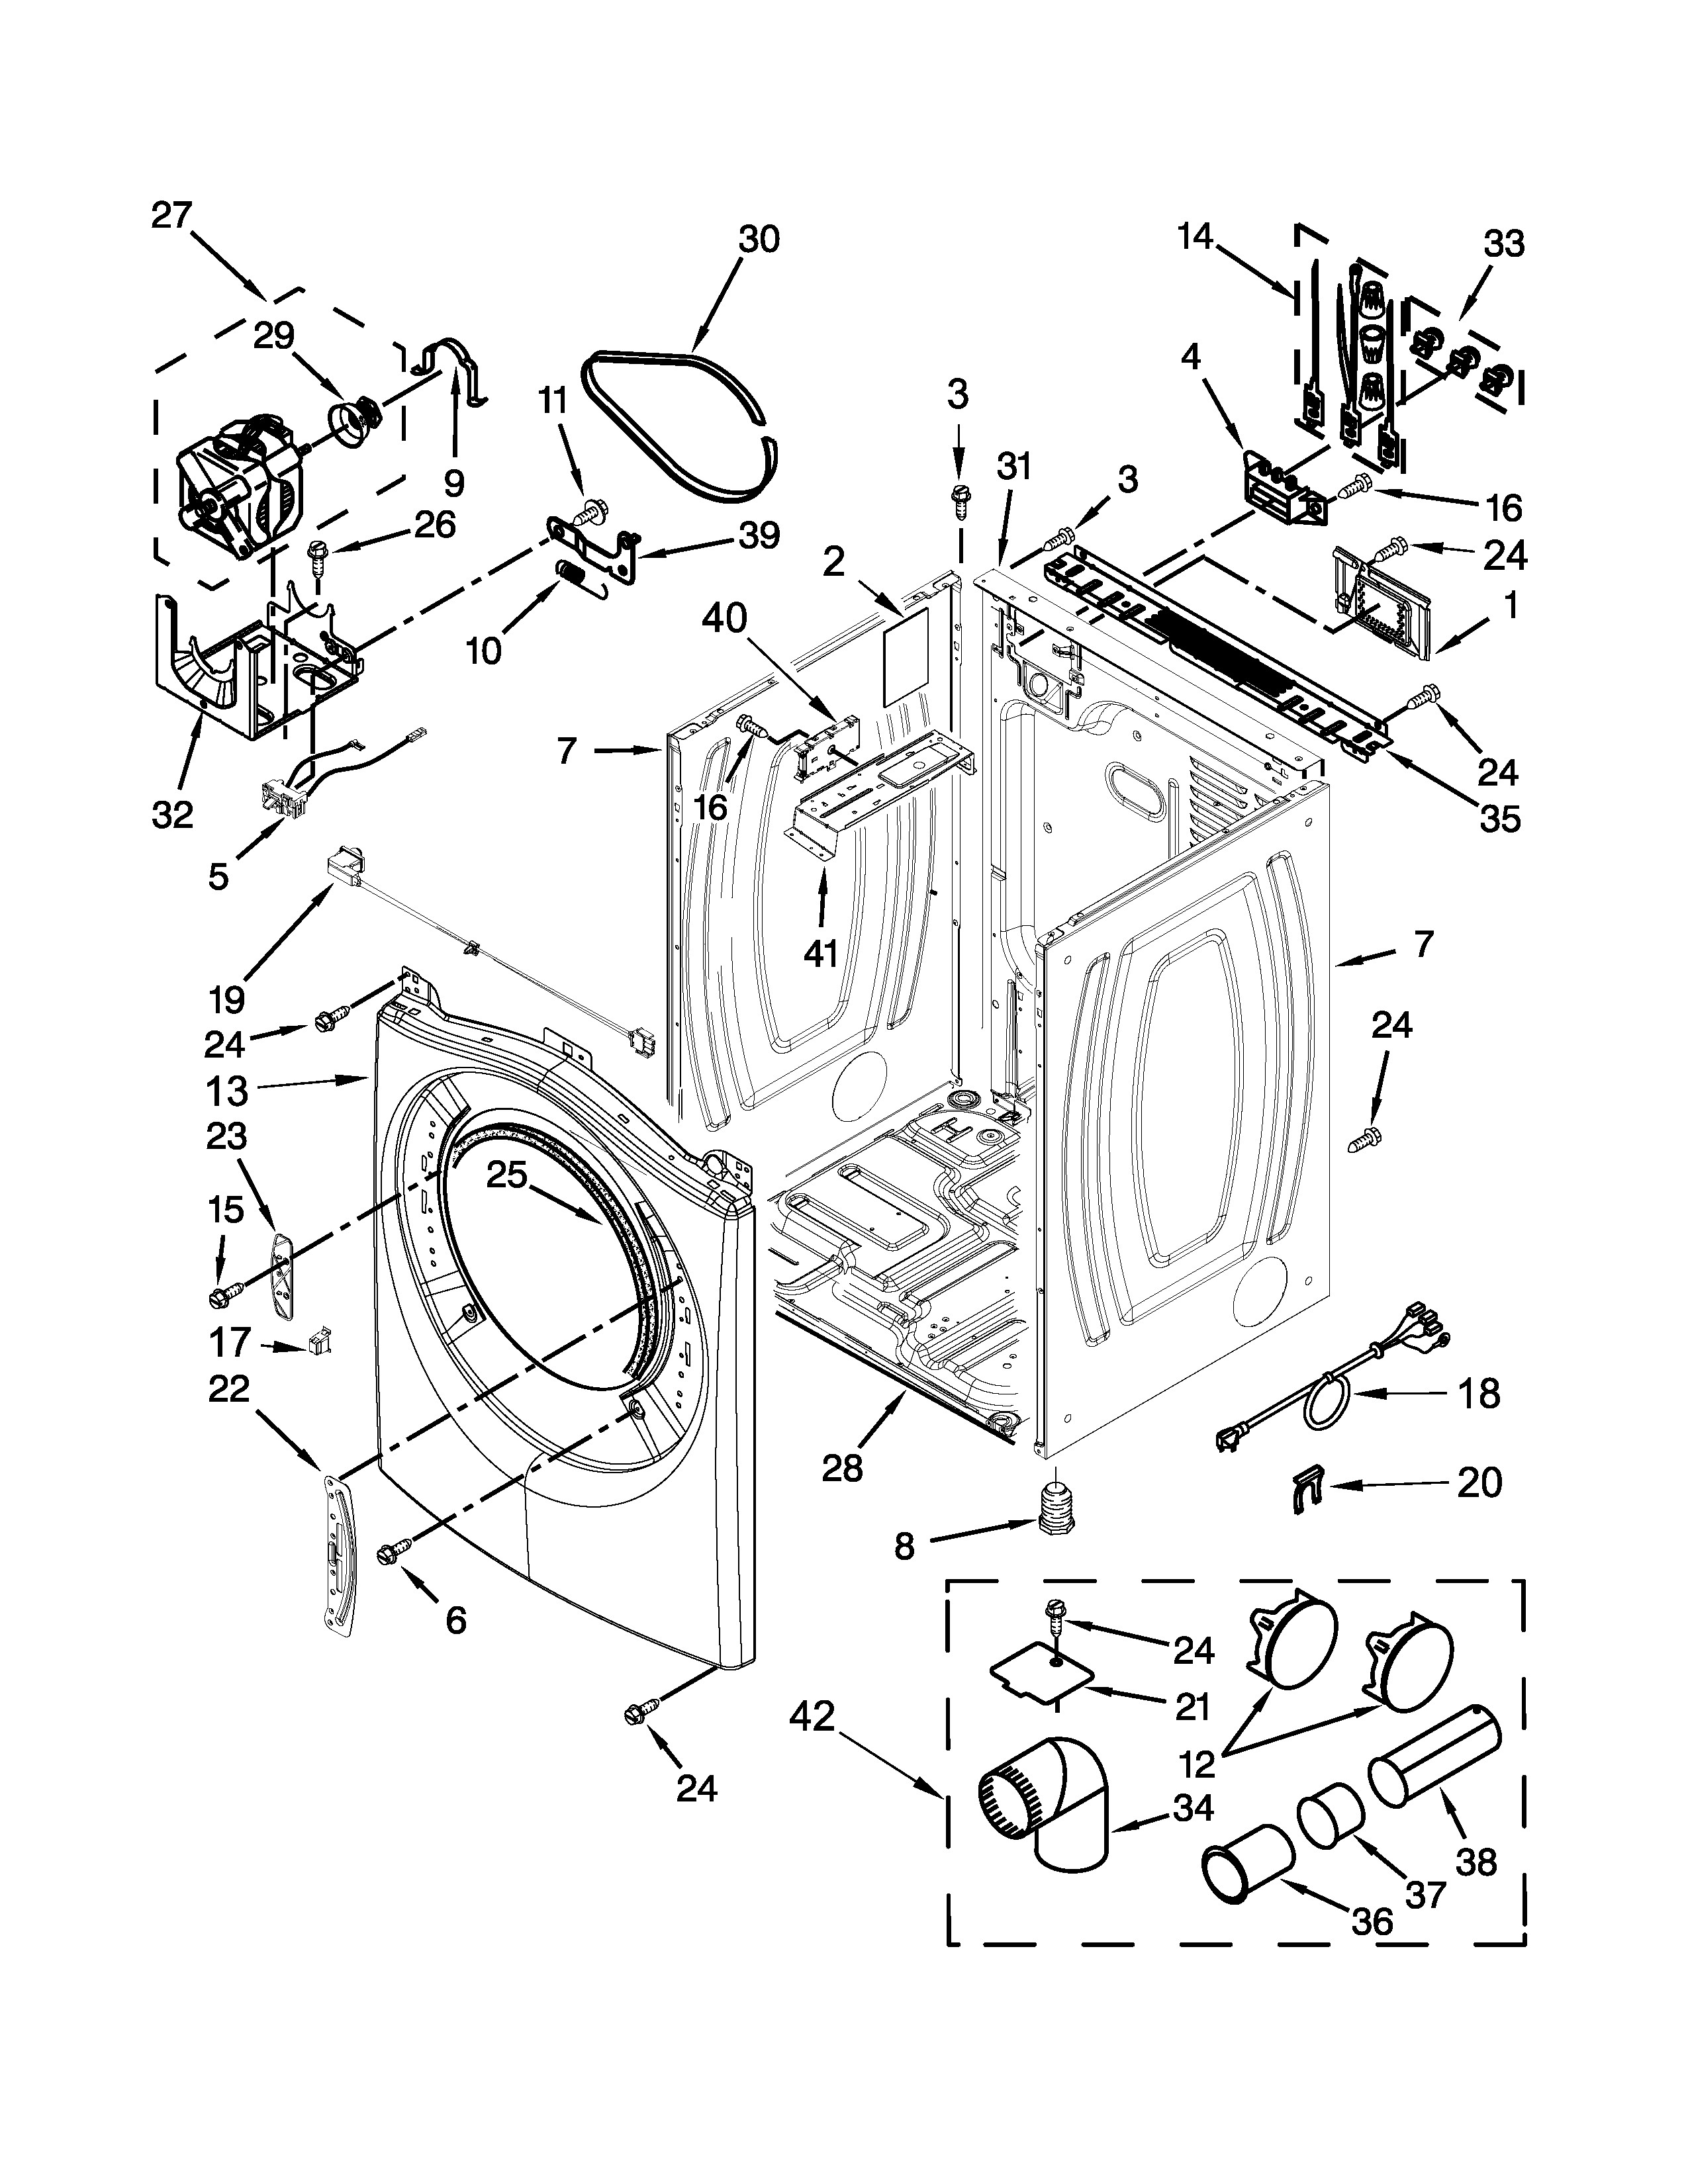 Amana Dryer Parts Diagram Amana Model Yned5800dw0 Residential Dryer Genuine Parts